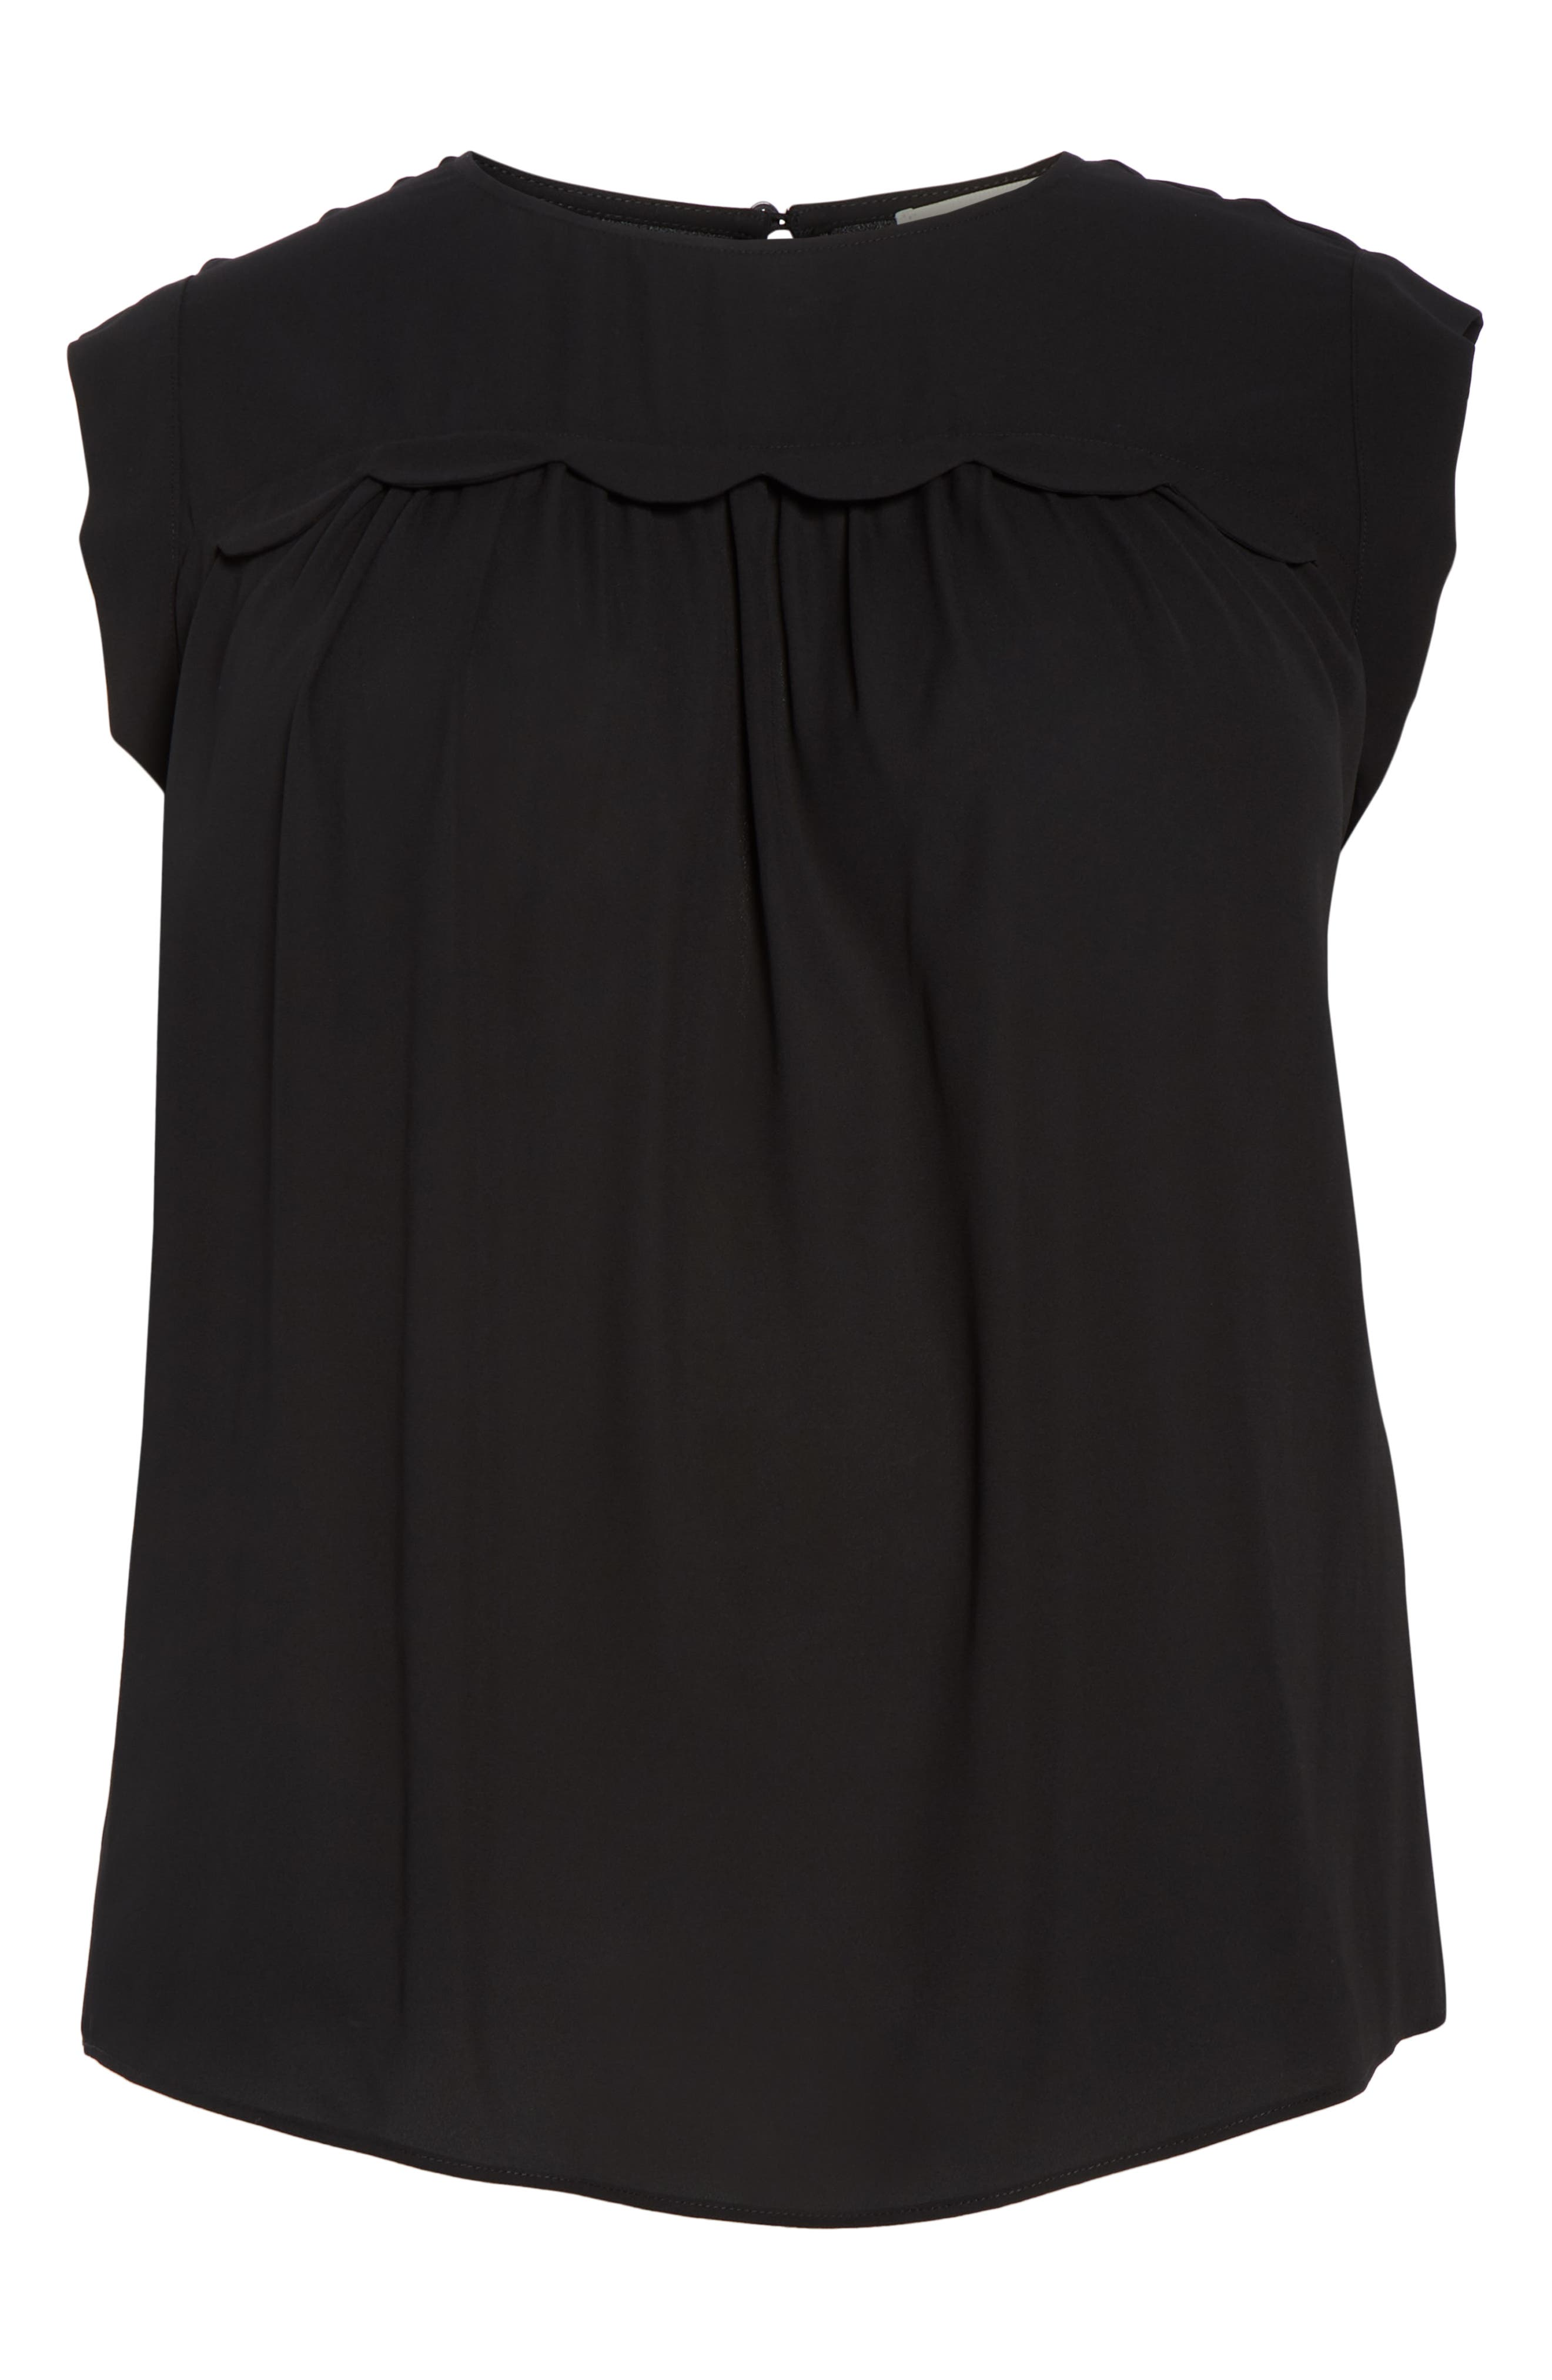 &.LAYERED, Scallop Trim Blouse, Alternate thumbnail 6, color, BLACK